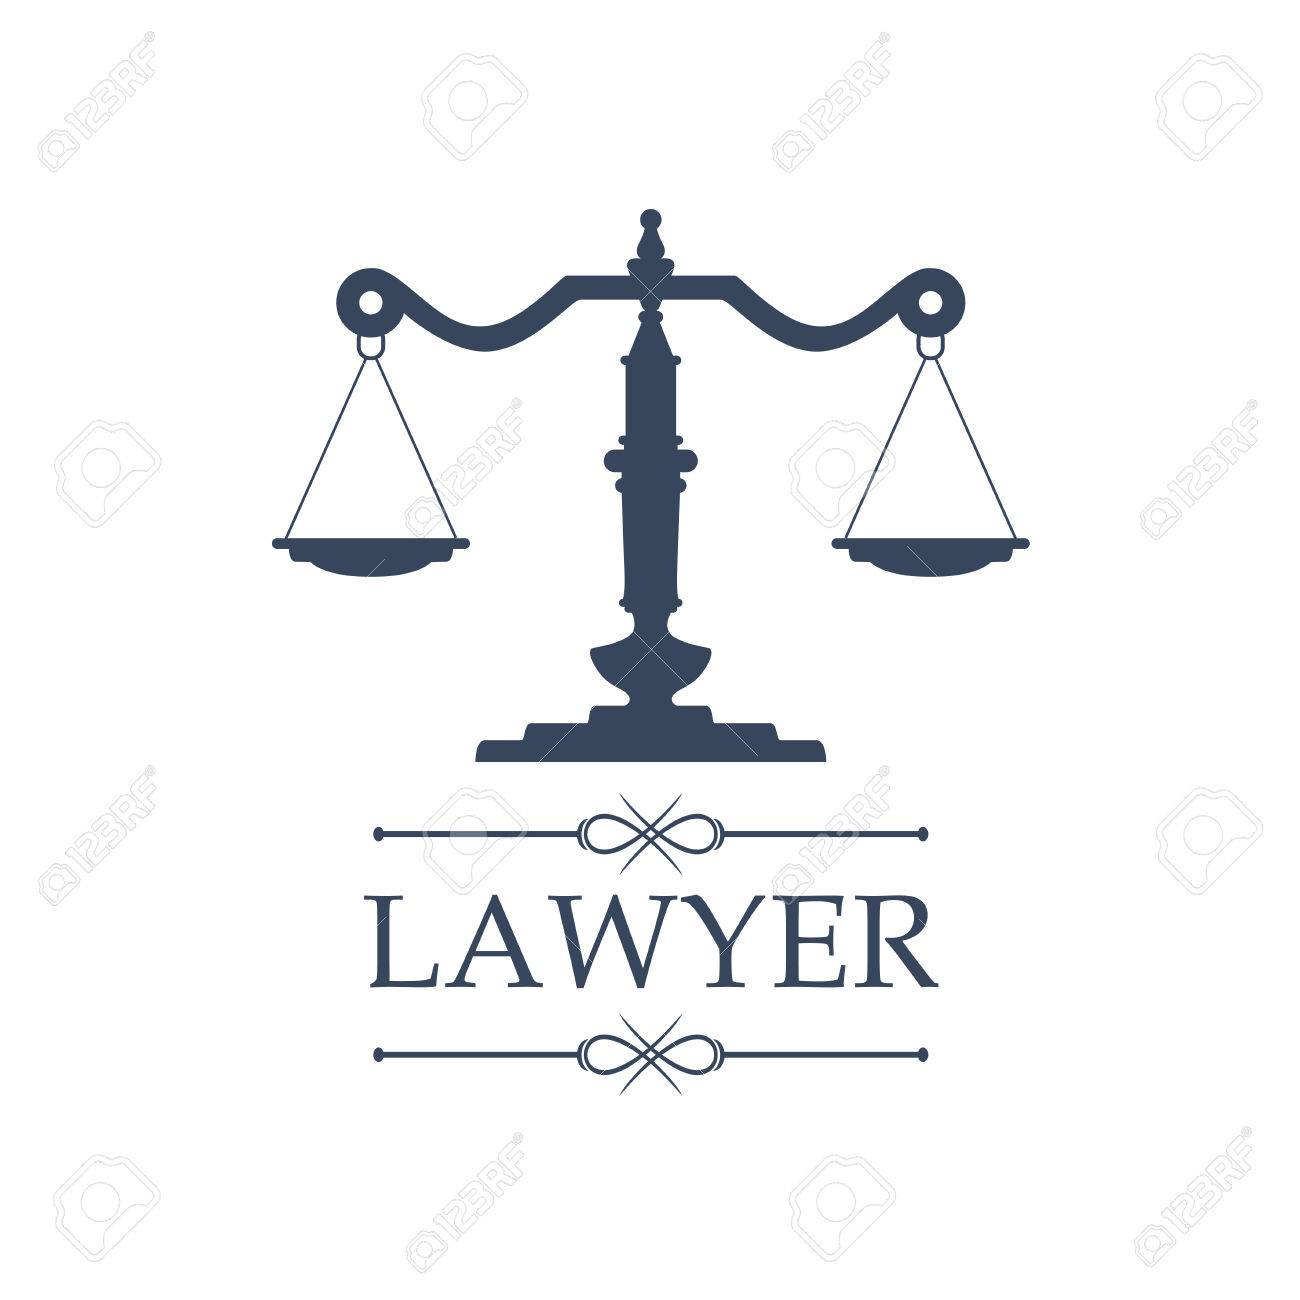 Legal Center Or Law Advocate Icon With Symbol Of Justice Scales